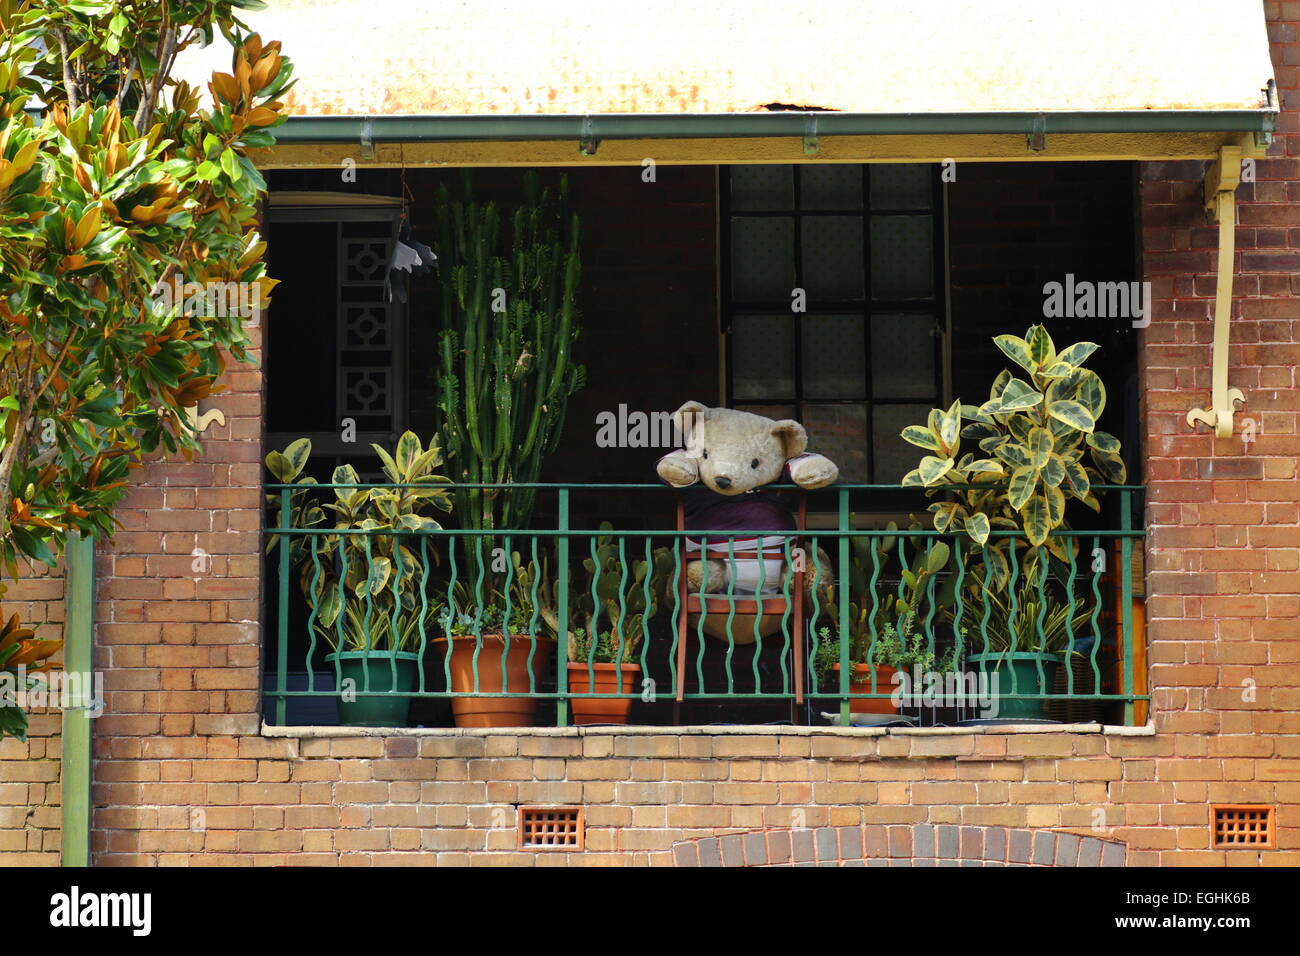 A large teddy bear perched on a balcony patiently waiting for its owner to return home from work in Sydney, NSW, - Stock Image